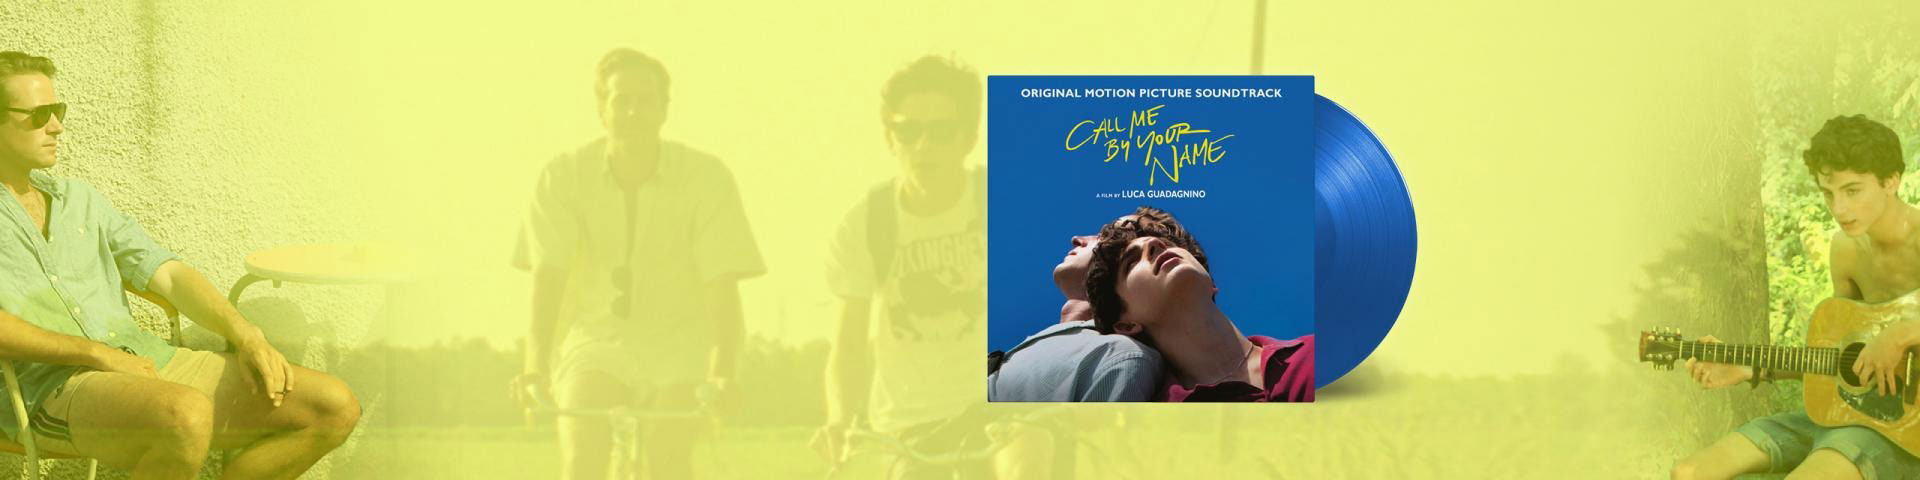 ORIGINAL SOUNDTRACK - CALL ME BY YOUR NAME